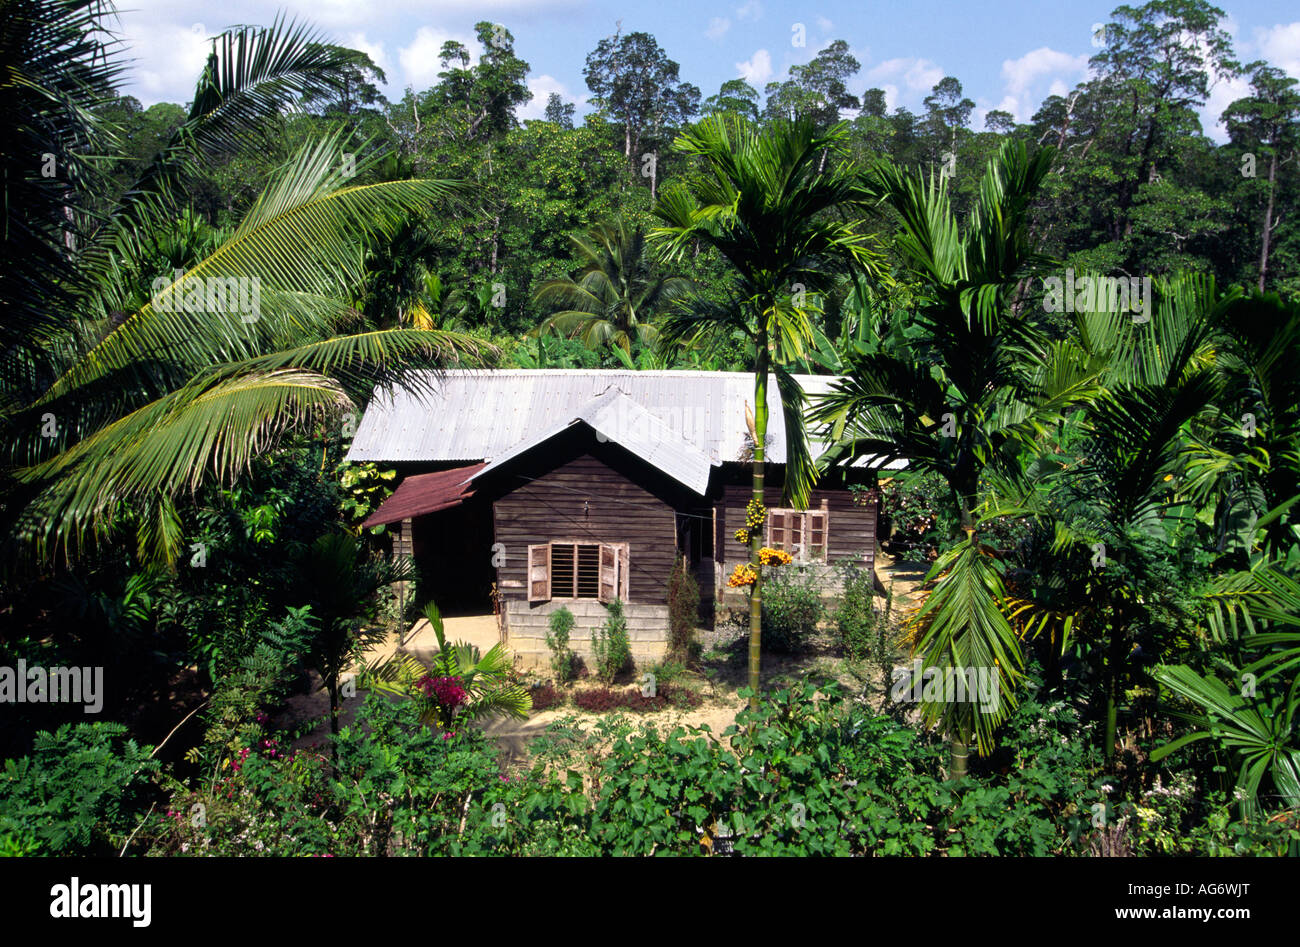 India Middle Andaman Island Betapur Small House In Verdant Garden Stock Photo Alamy